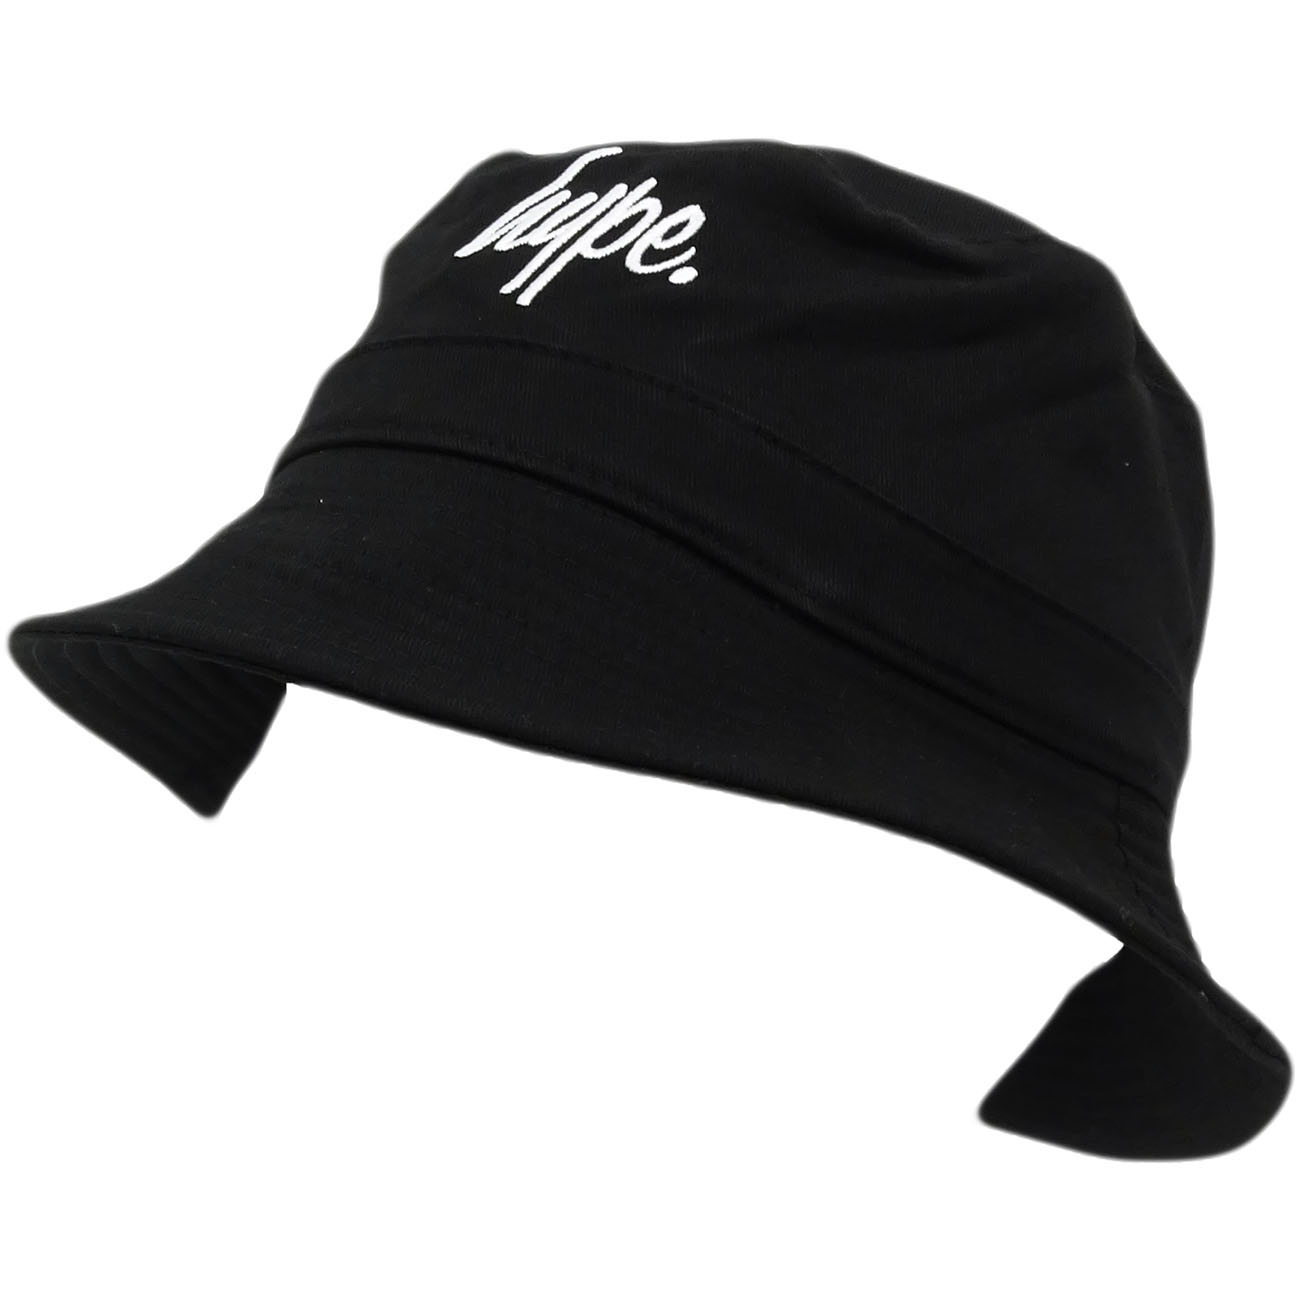 Just Hype Bucket Hat - Fisher Cap One Size 5055995466909  fae5a418ce4e